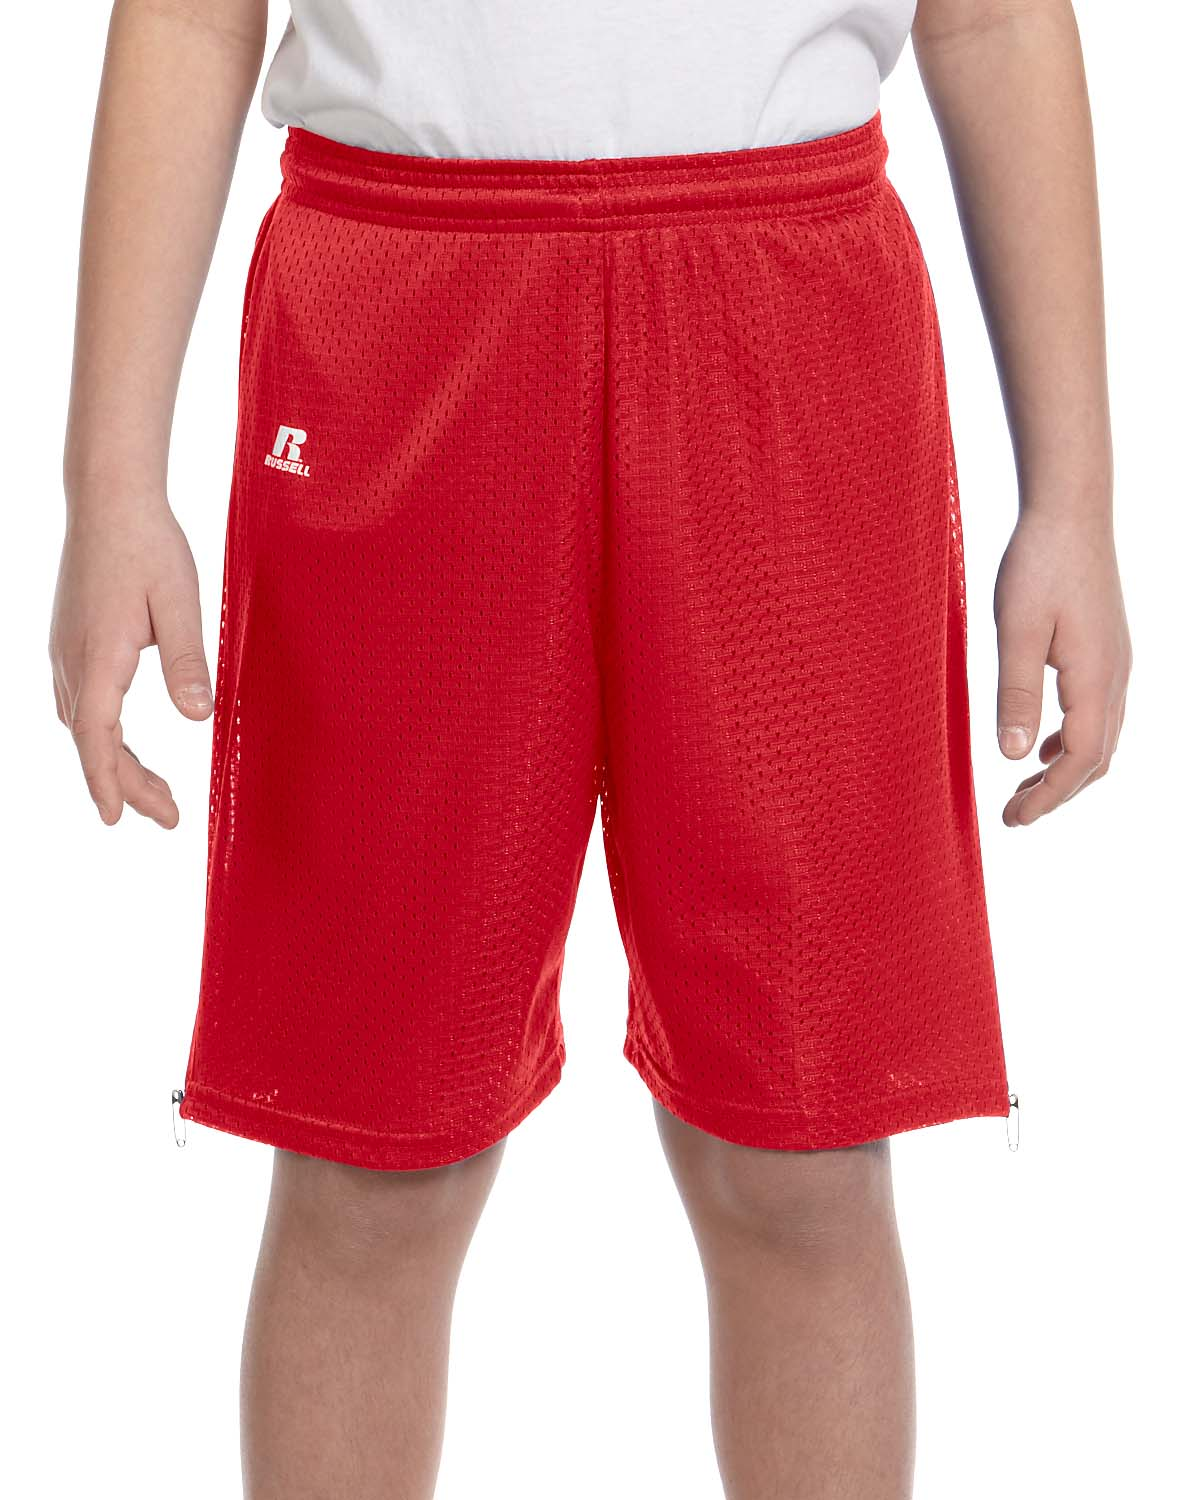 Check out these great deals on nylon athletic shorts.